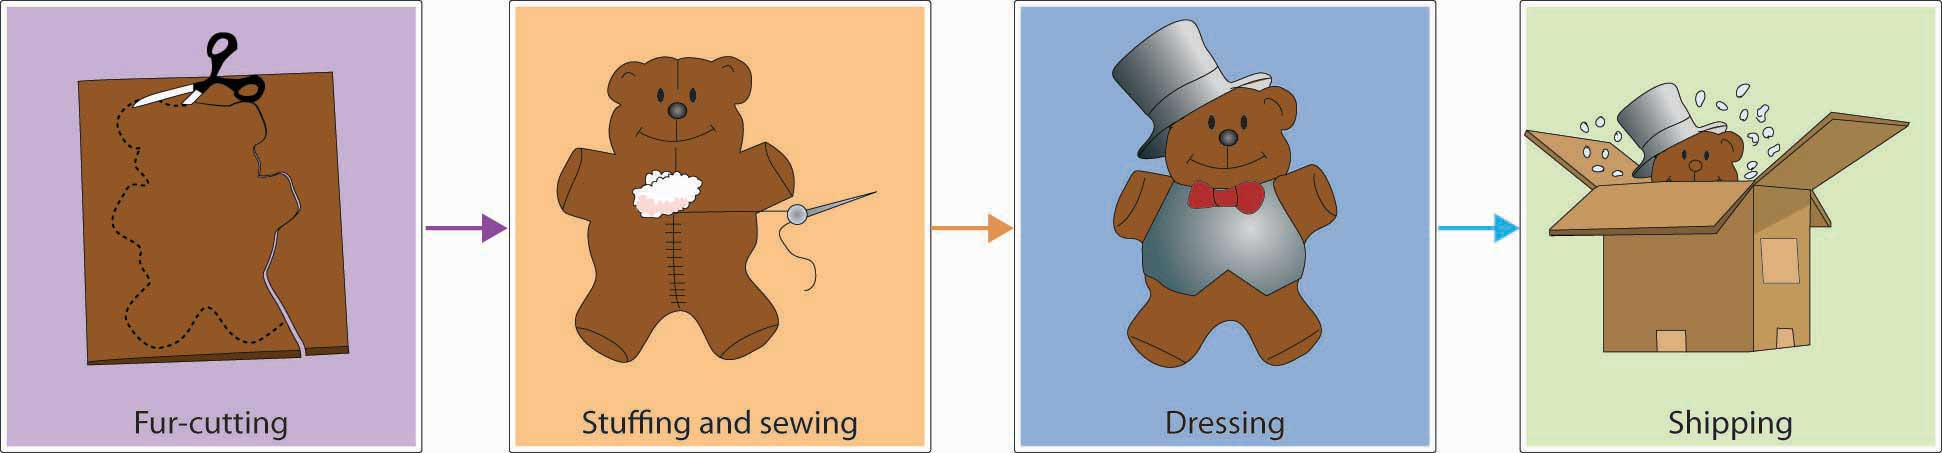 Process Layout at Vermont Teddy Bear Company: Fur-cutting -> Stuffing and sewing -> Dressing -> Shipping